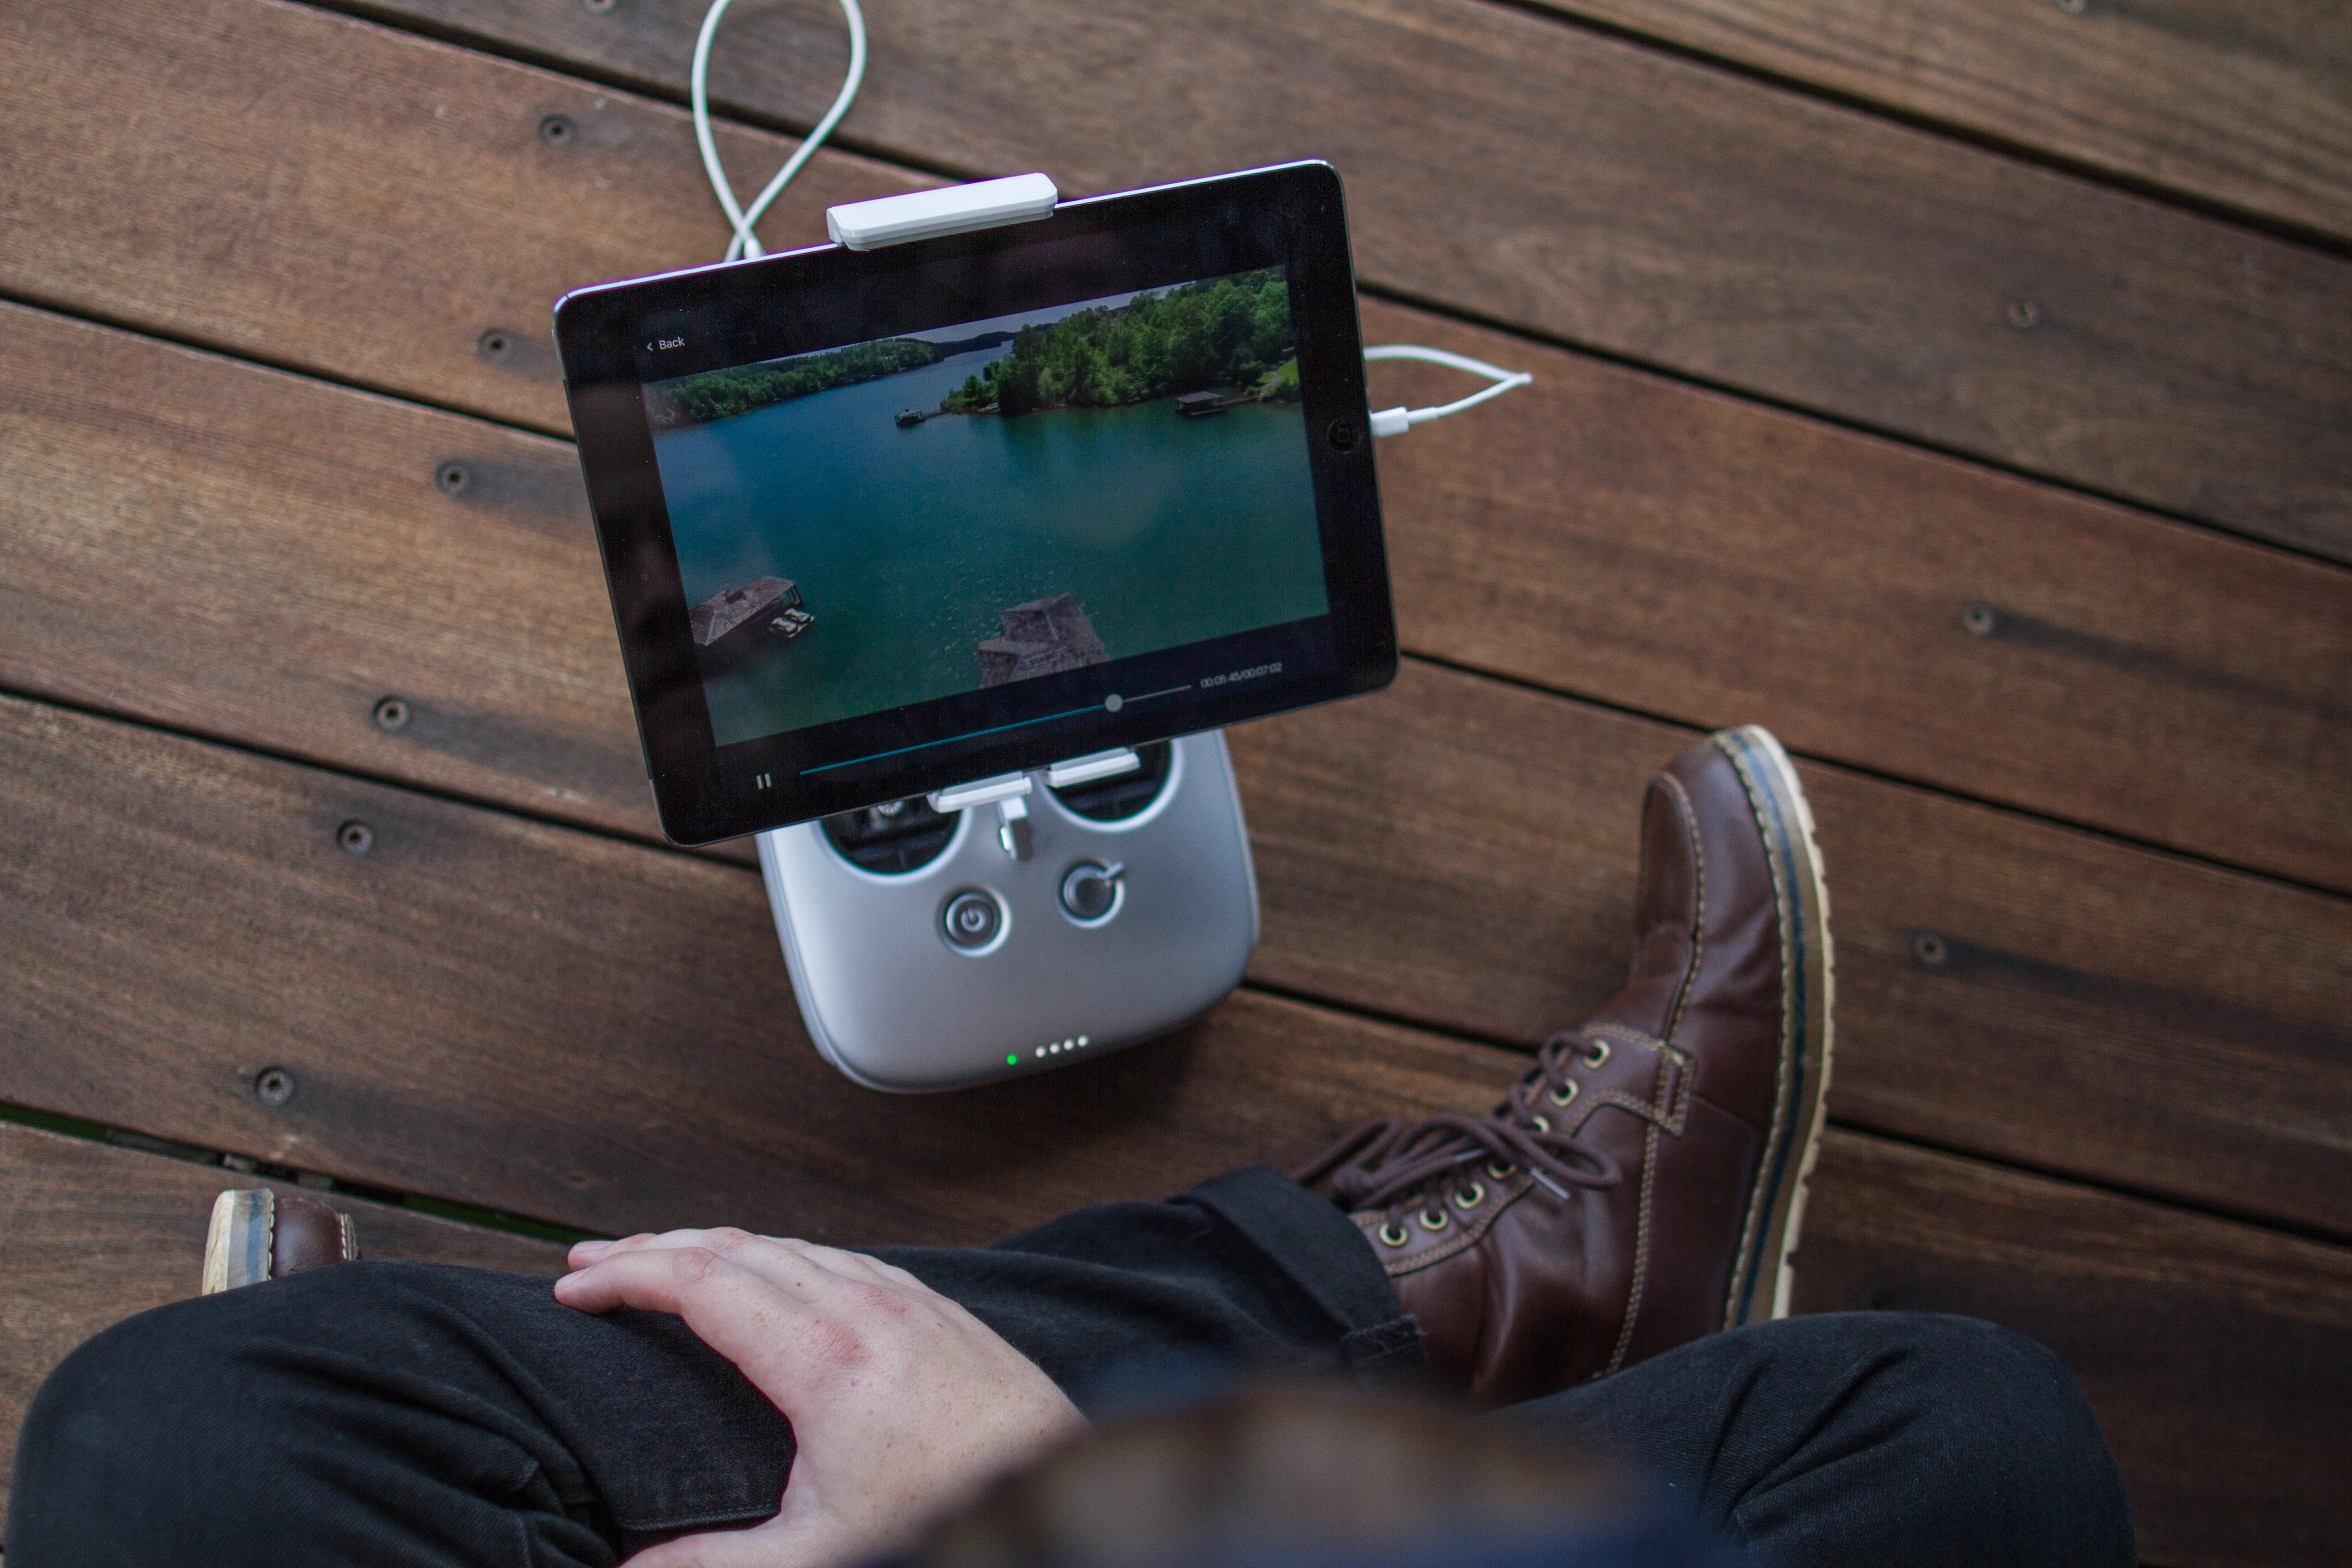 Movie streaming to tablet. Photo by Parker Byrd on Unsplash